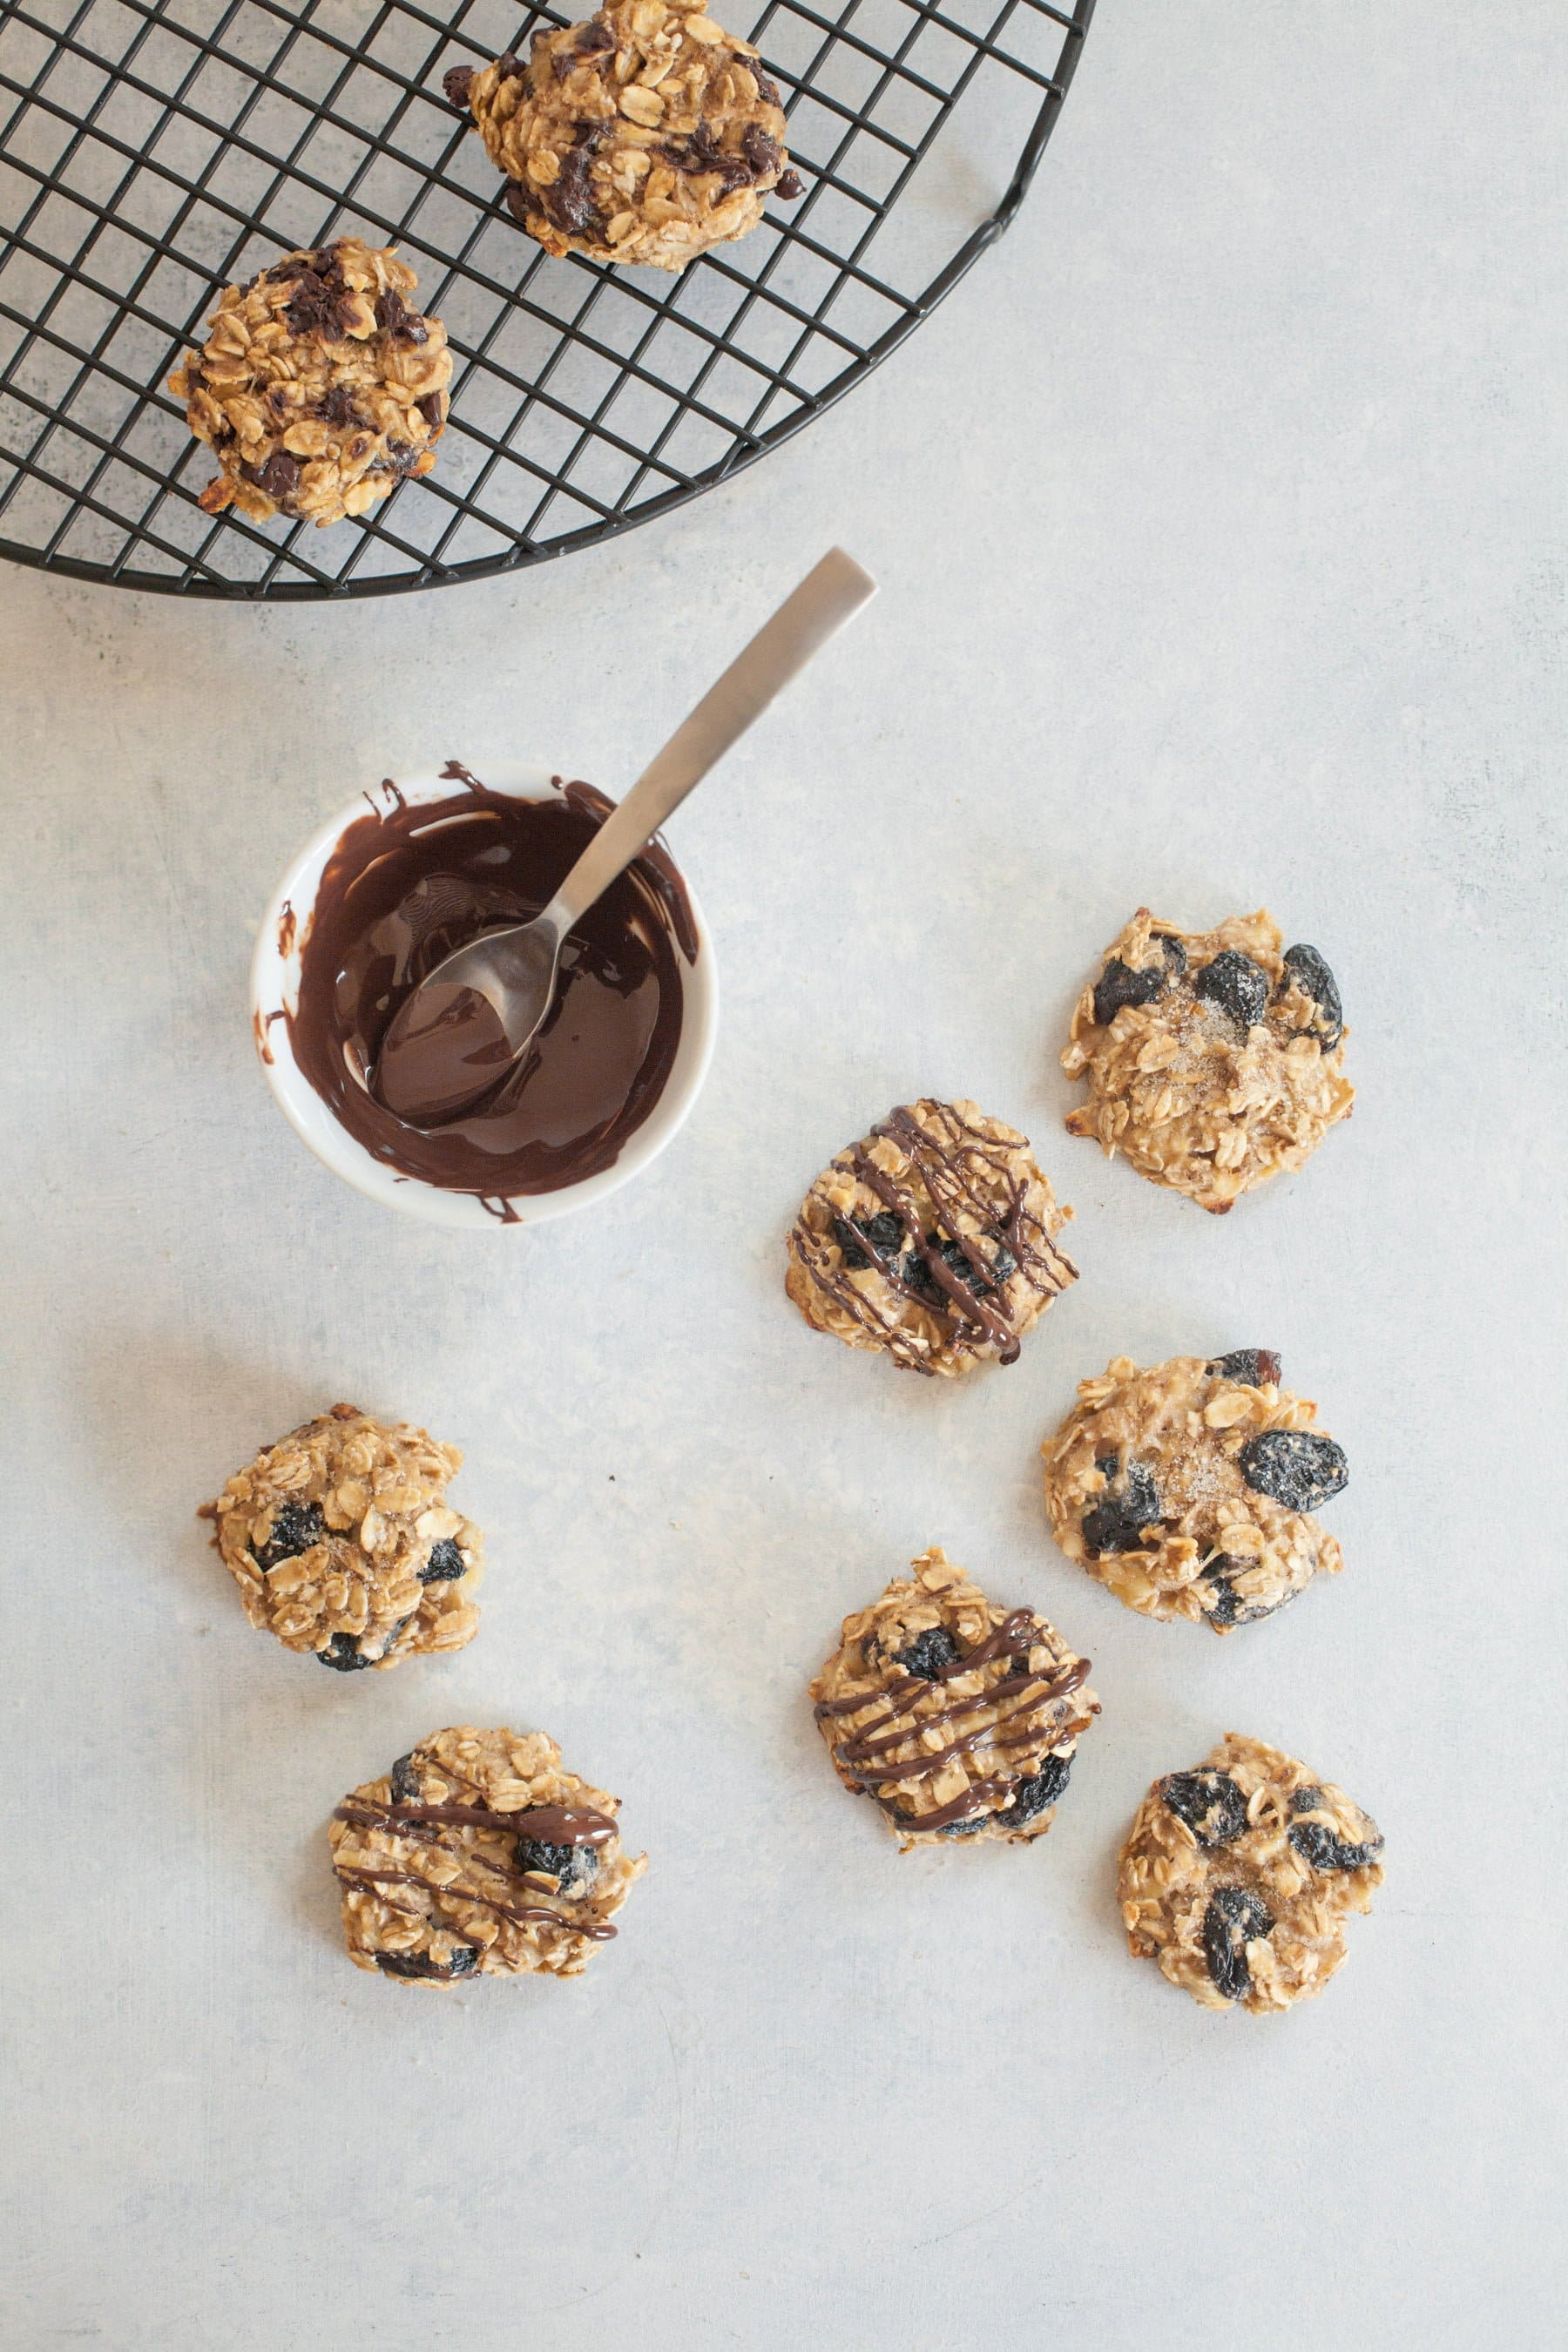 Three Ingredient Oatmeal Raisin Cookies